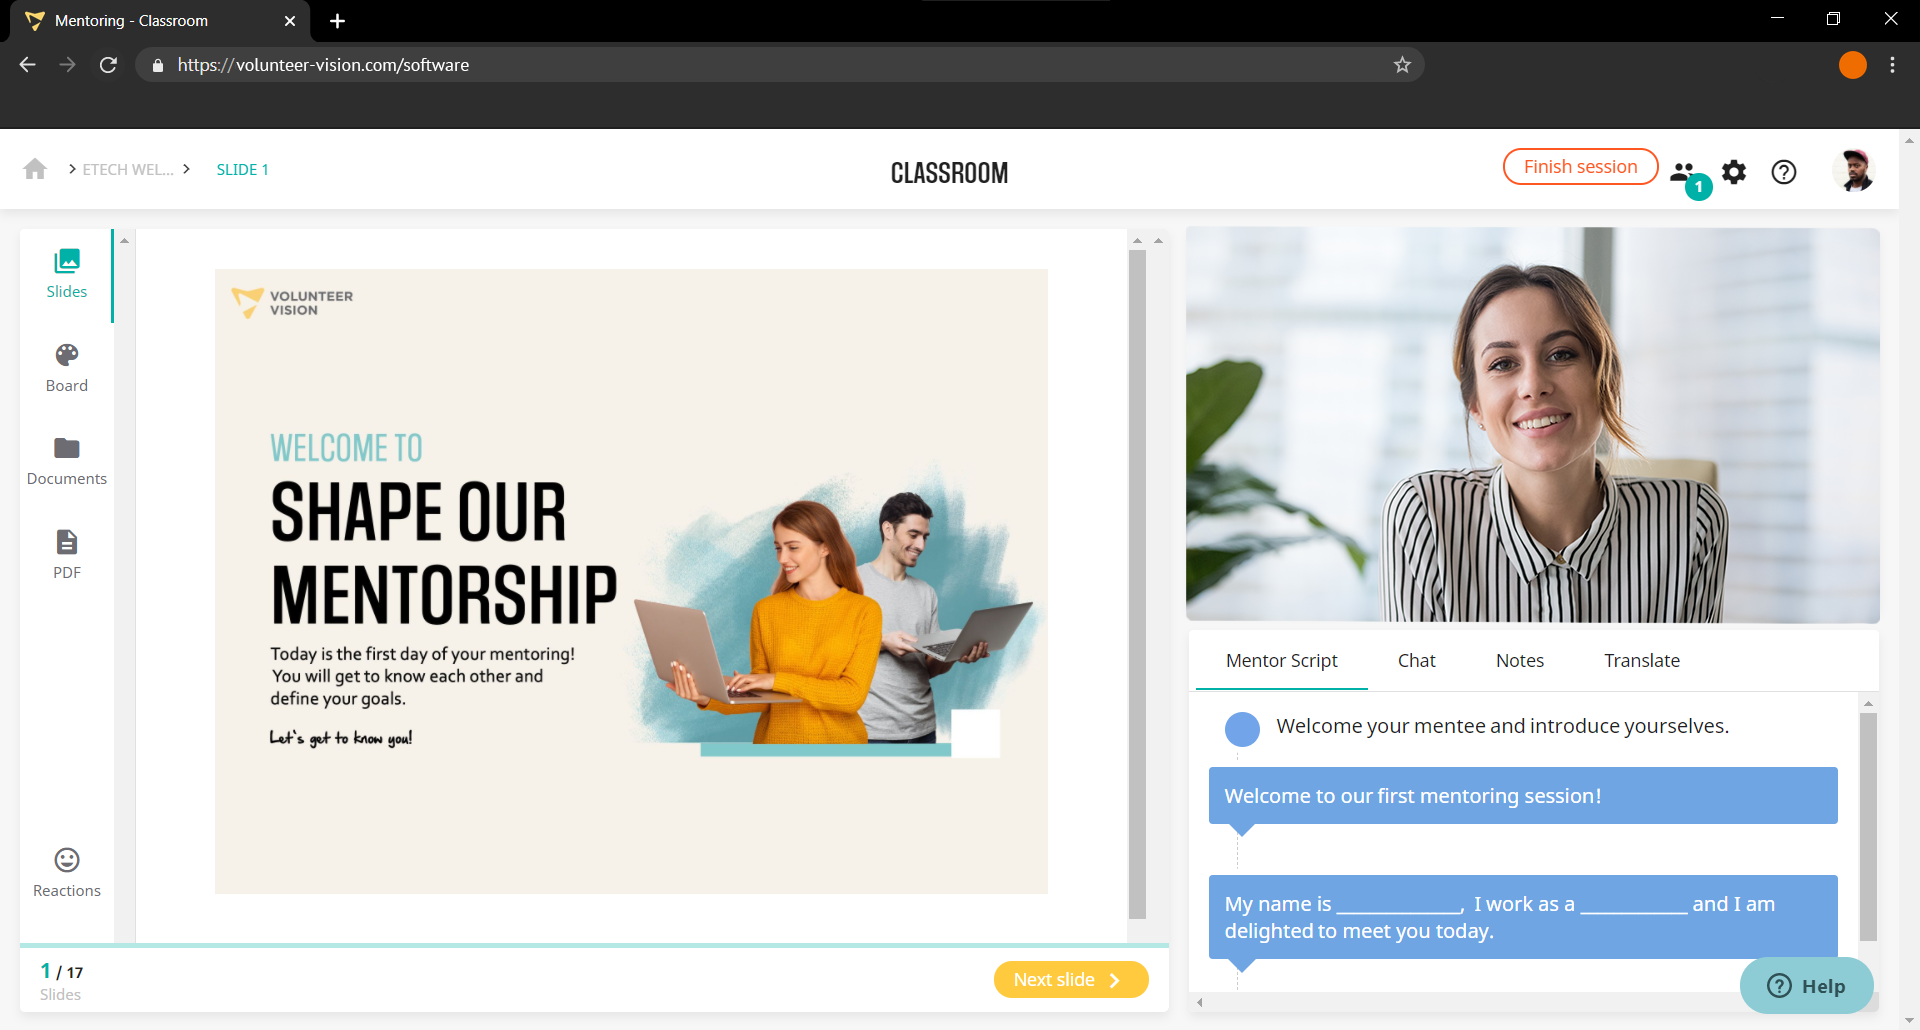 Volunteer Vision Software - Our digital classroom includes features such as e-learning content, live video chat, mentor scripts, whiteboard & file sharing tools, translator etc.